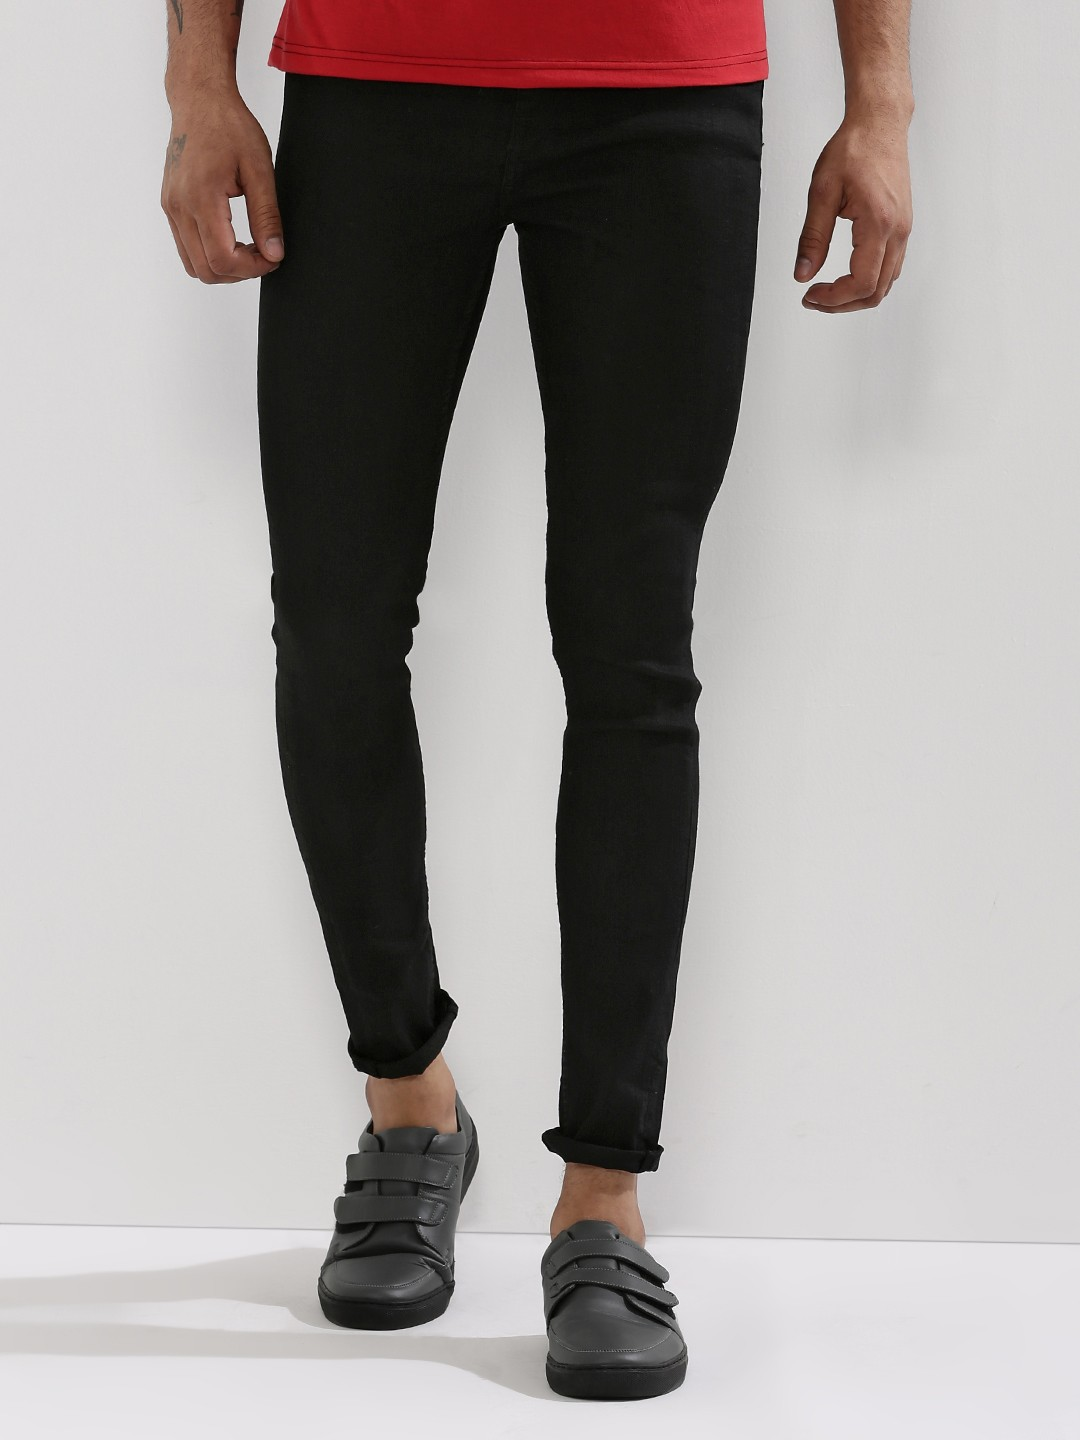 Buy NEW LOOK Super Skinny Jeans For Men - Men's Black Skinny Jeans ...